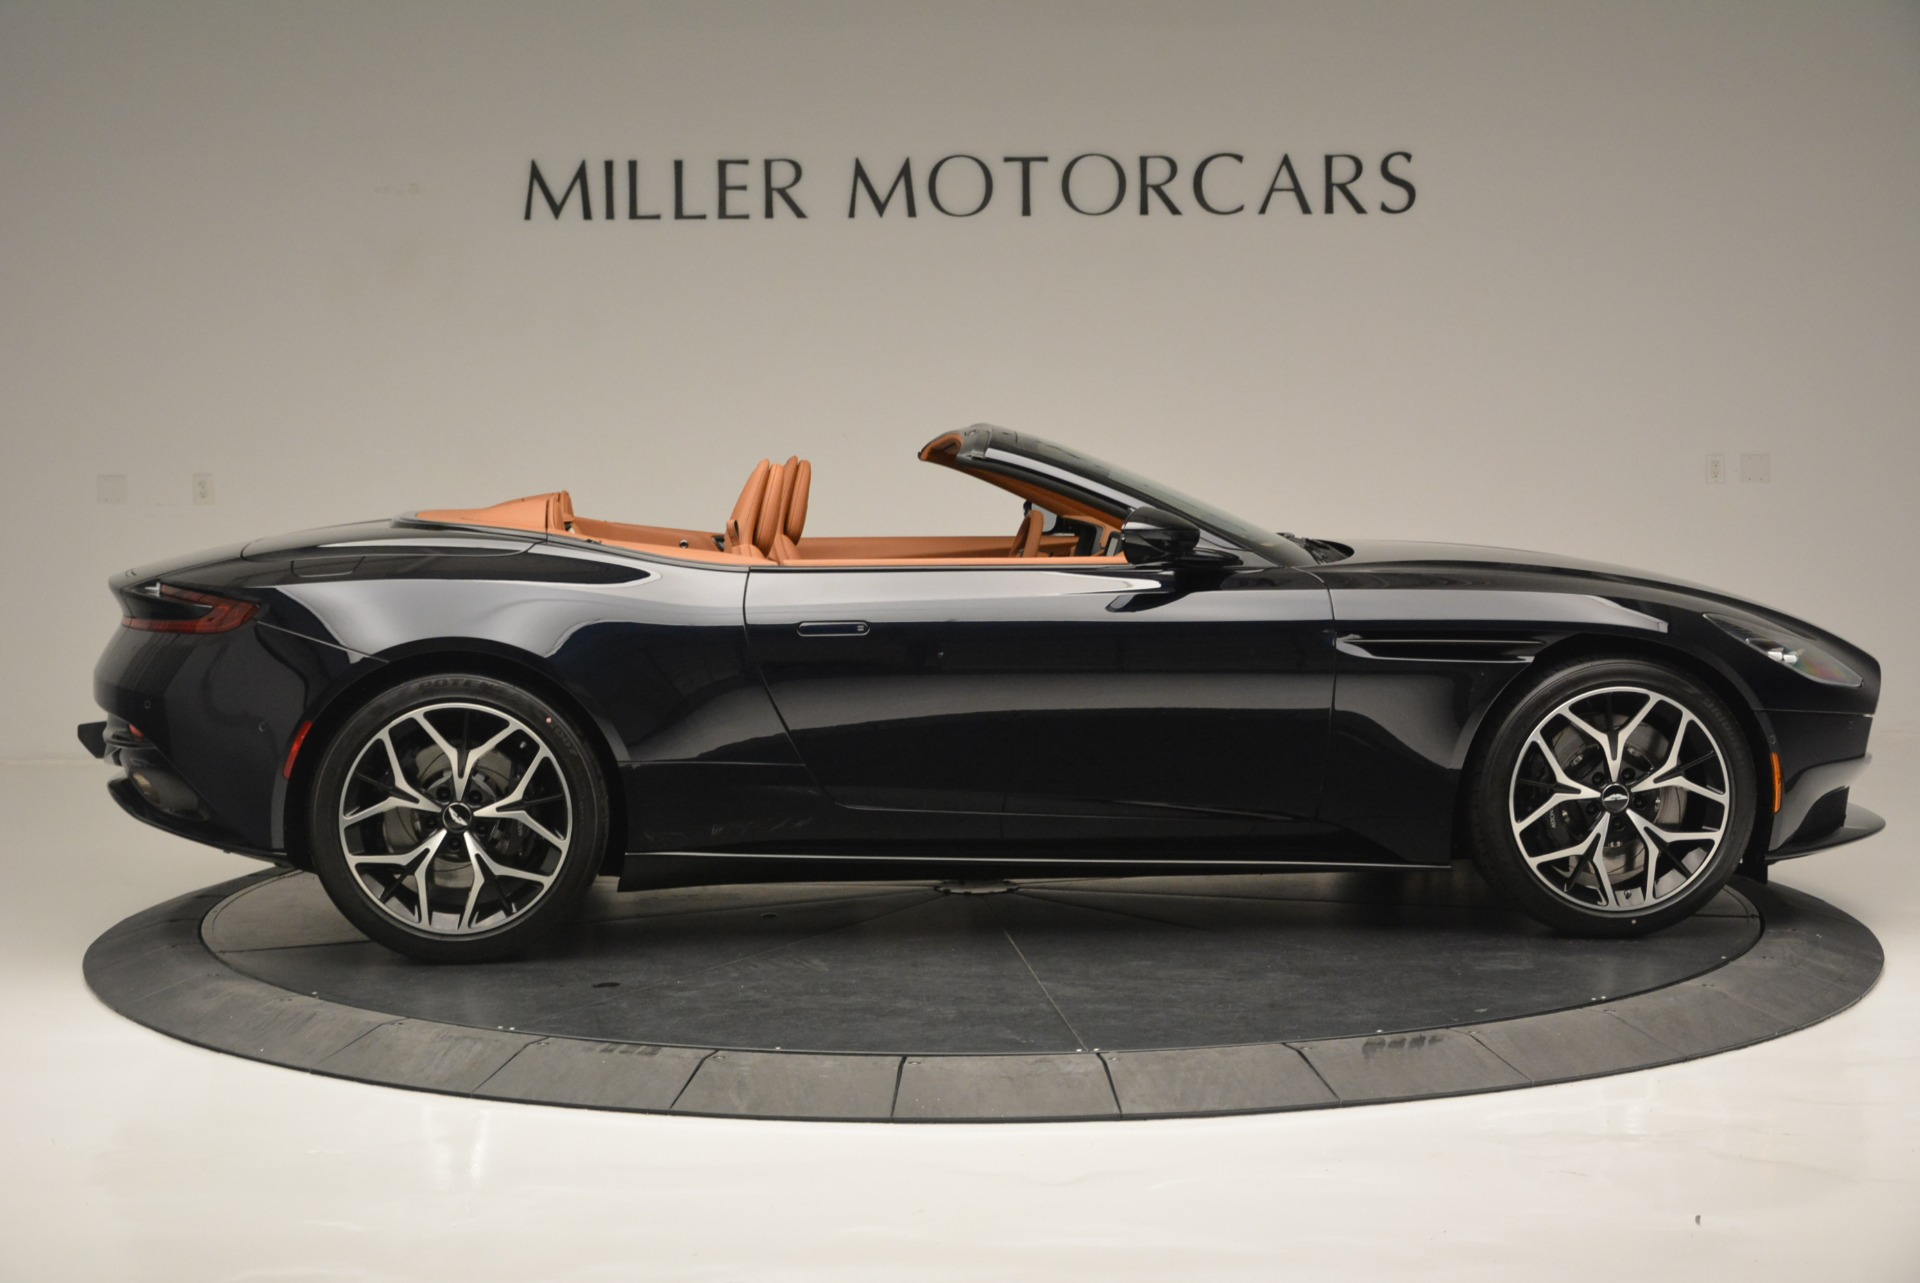 New 2019 Aston Martin DB11 Volante Volante For Sale In Greenwich, CT 2450_p9